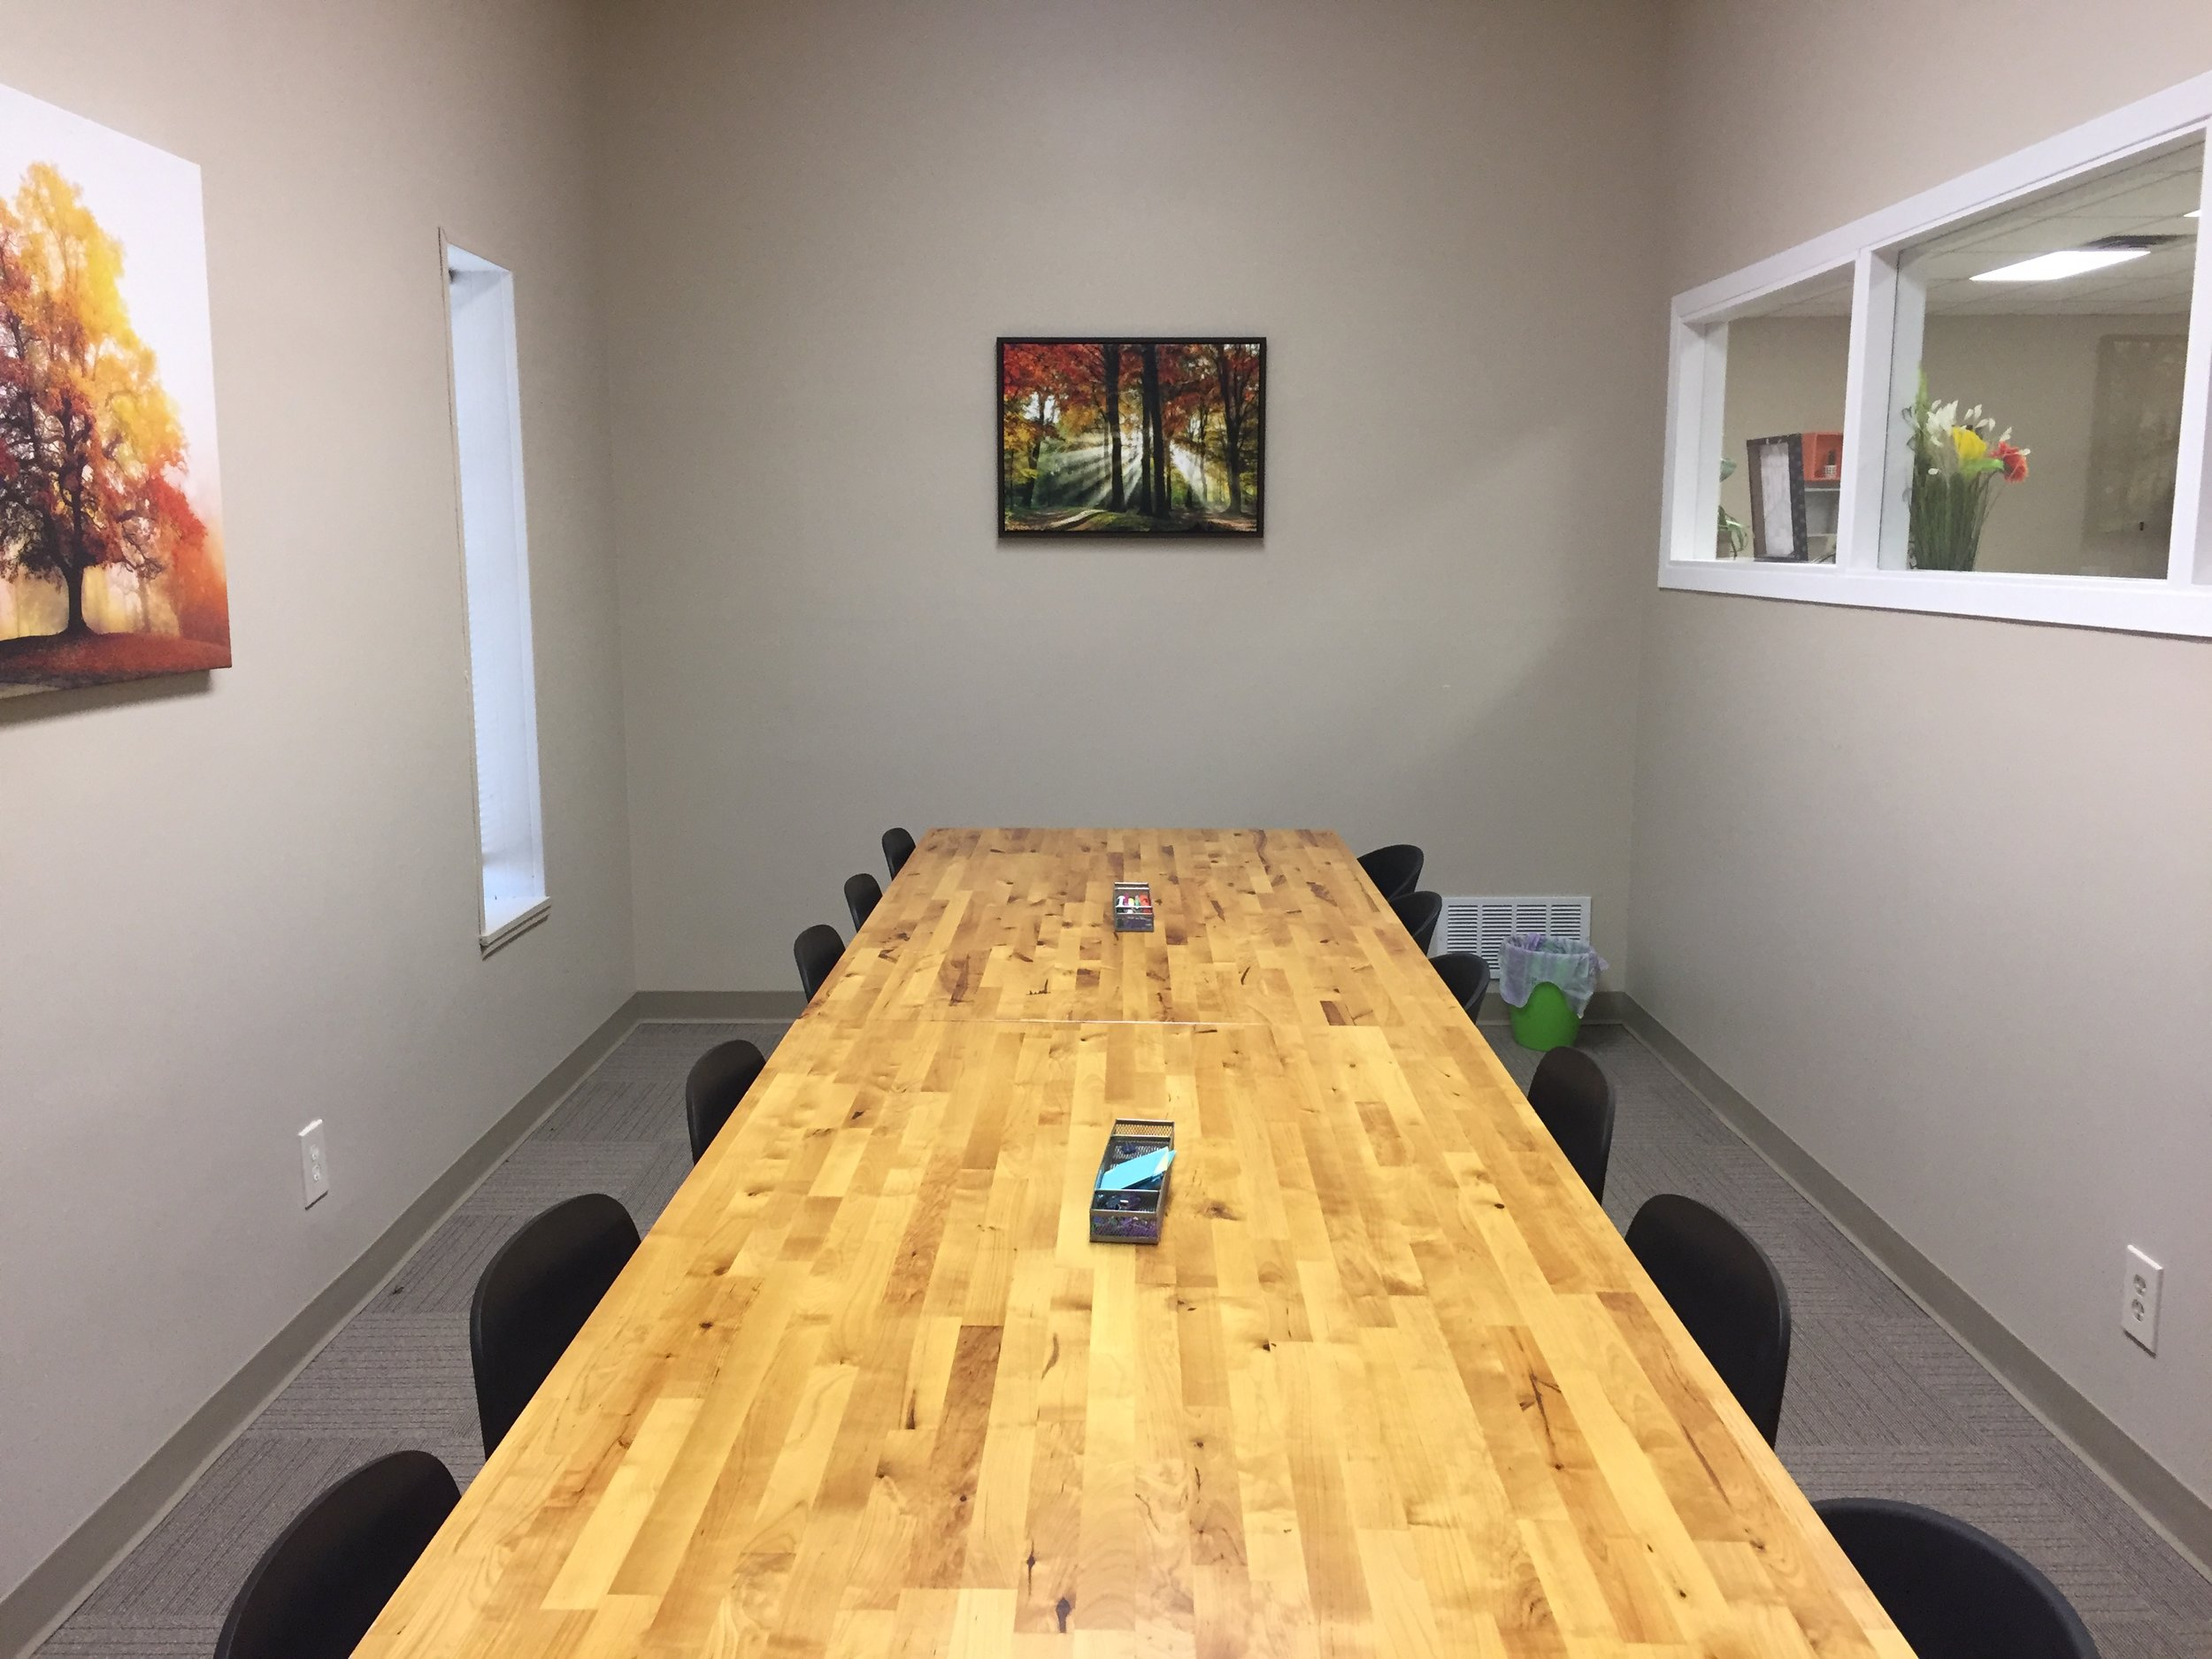 fall conference room 2.JPG